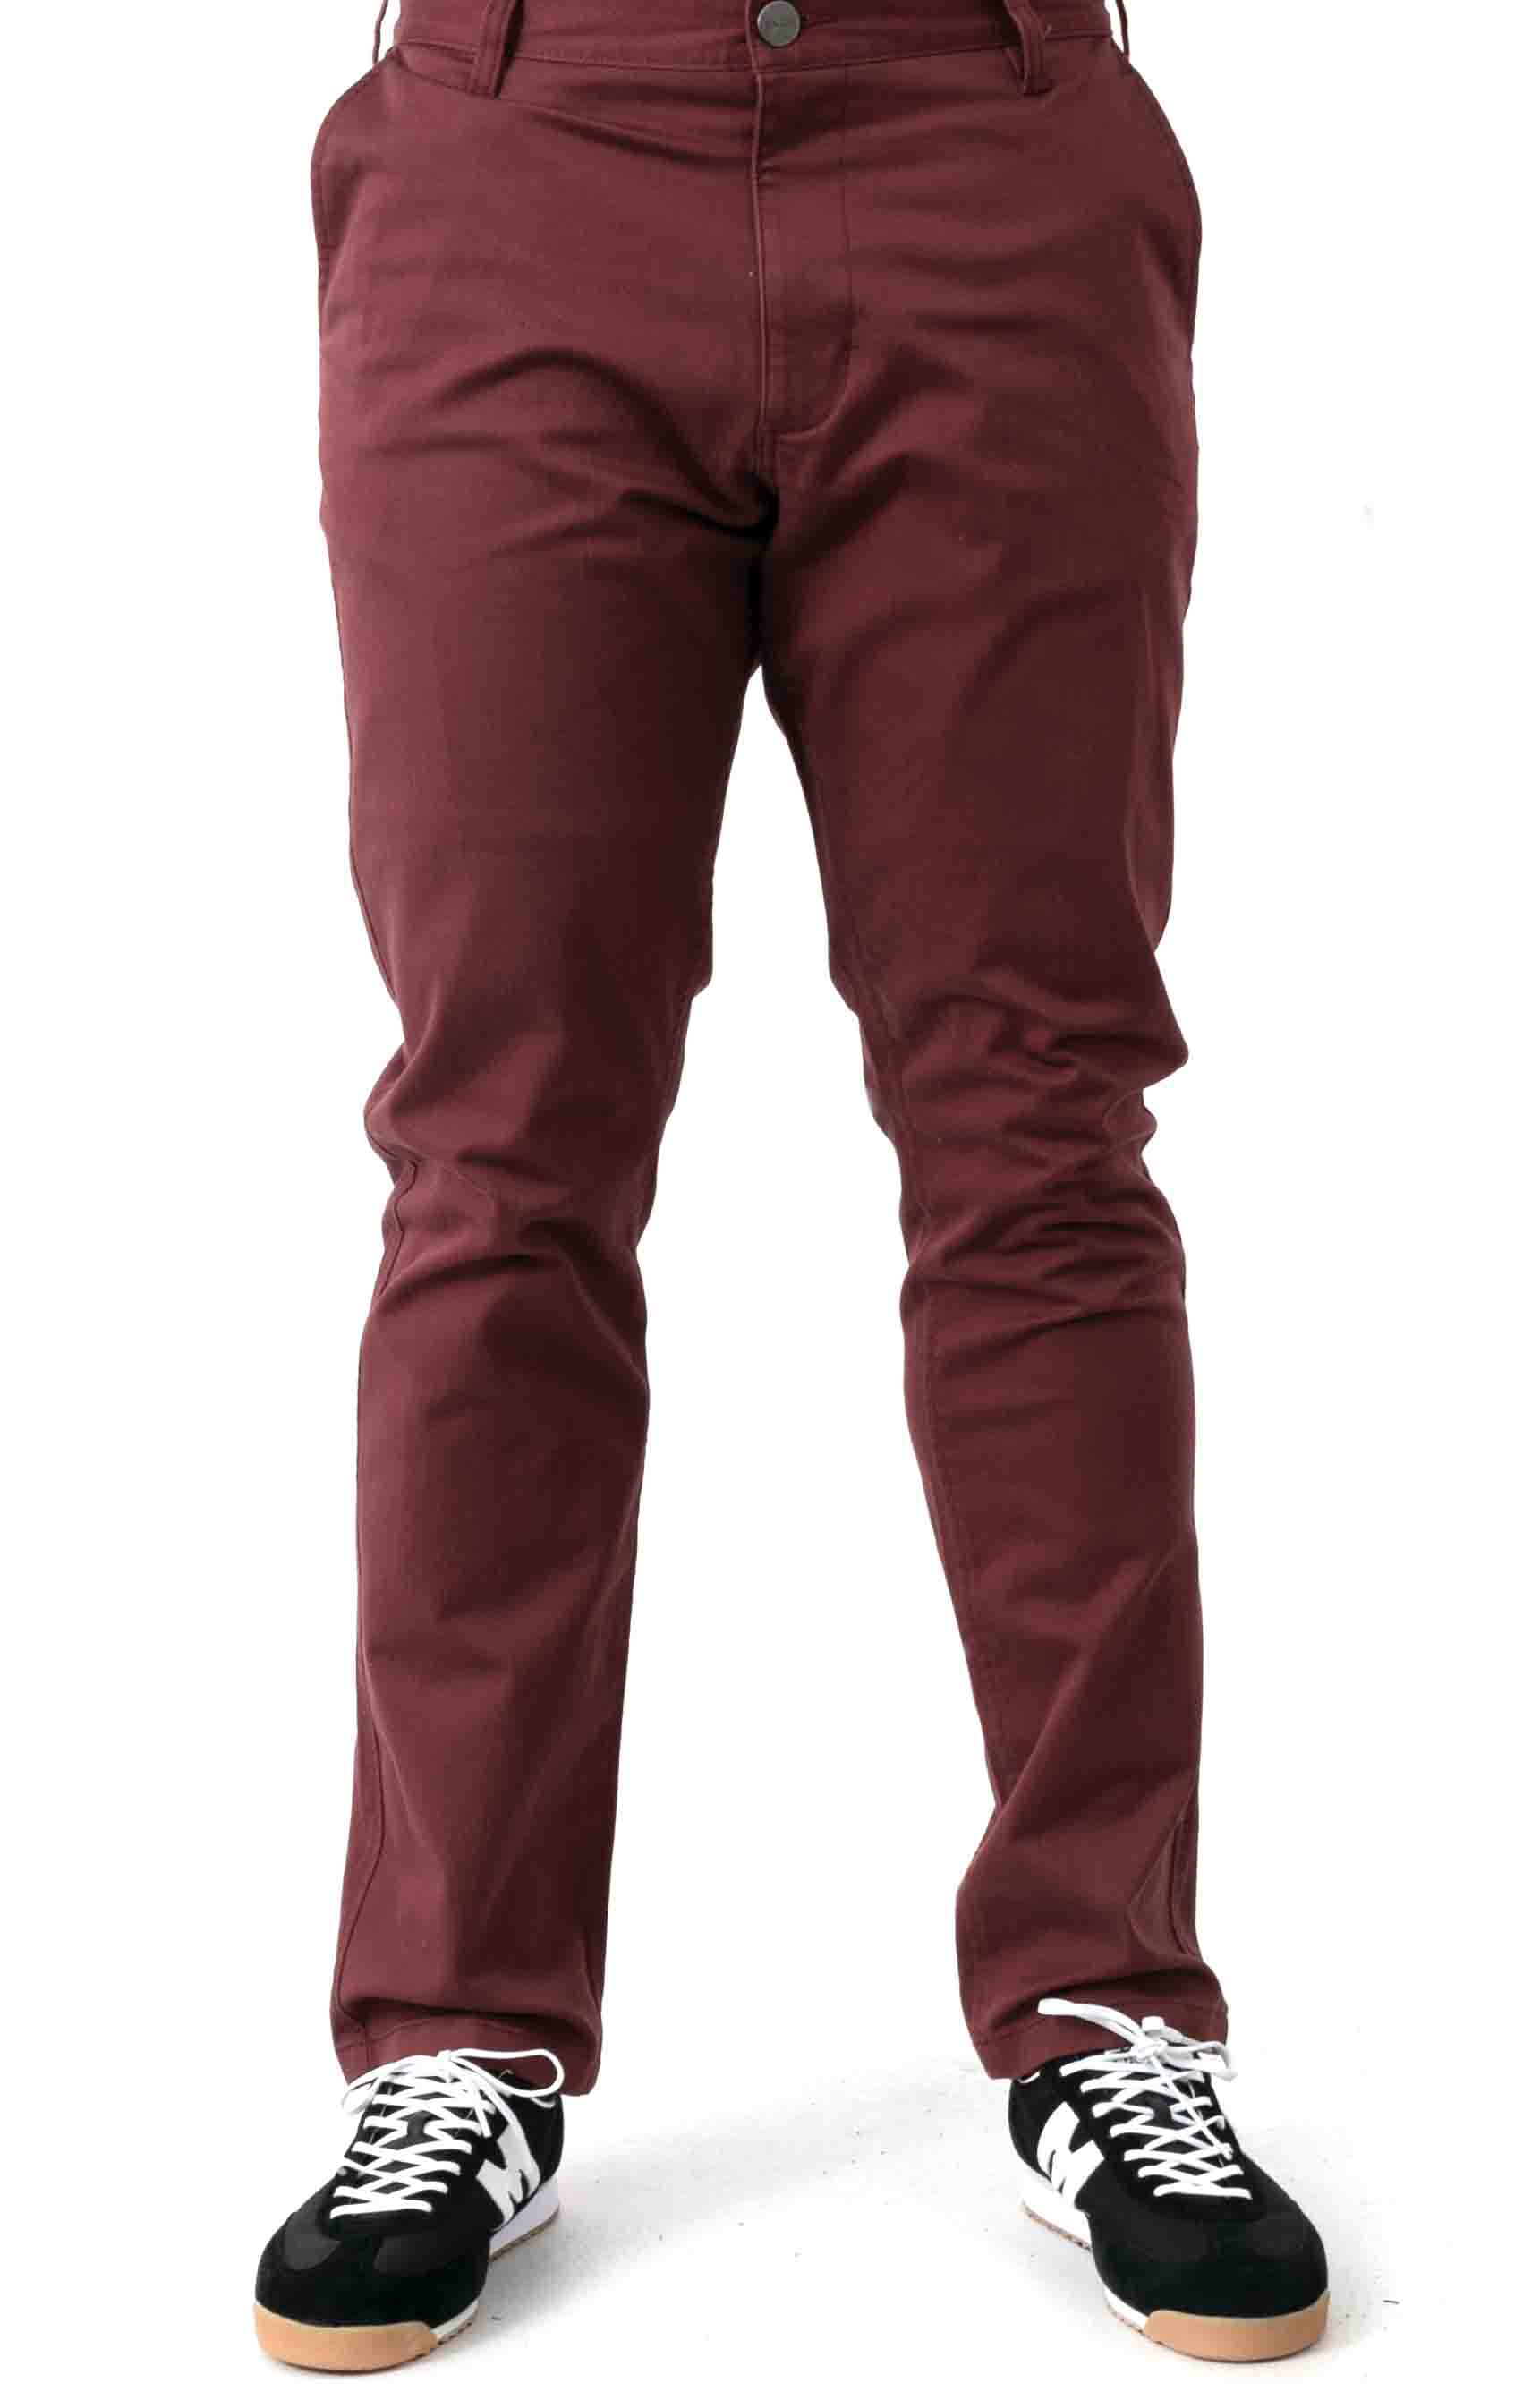 Week-End Stretch Straight Fit Pants - Oxblood Red 2